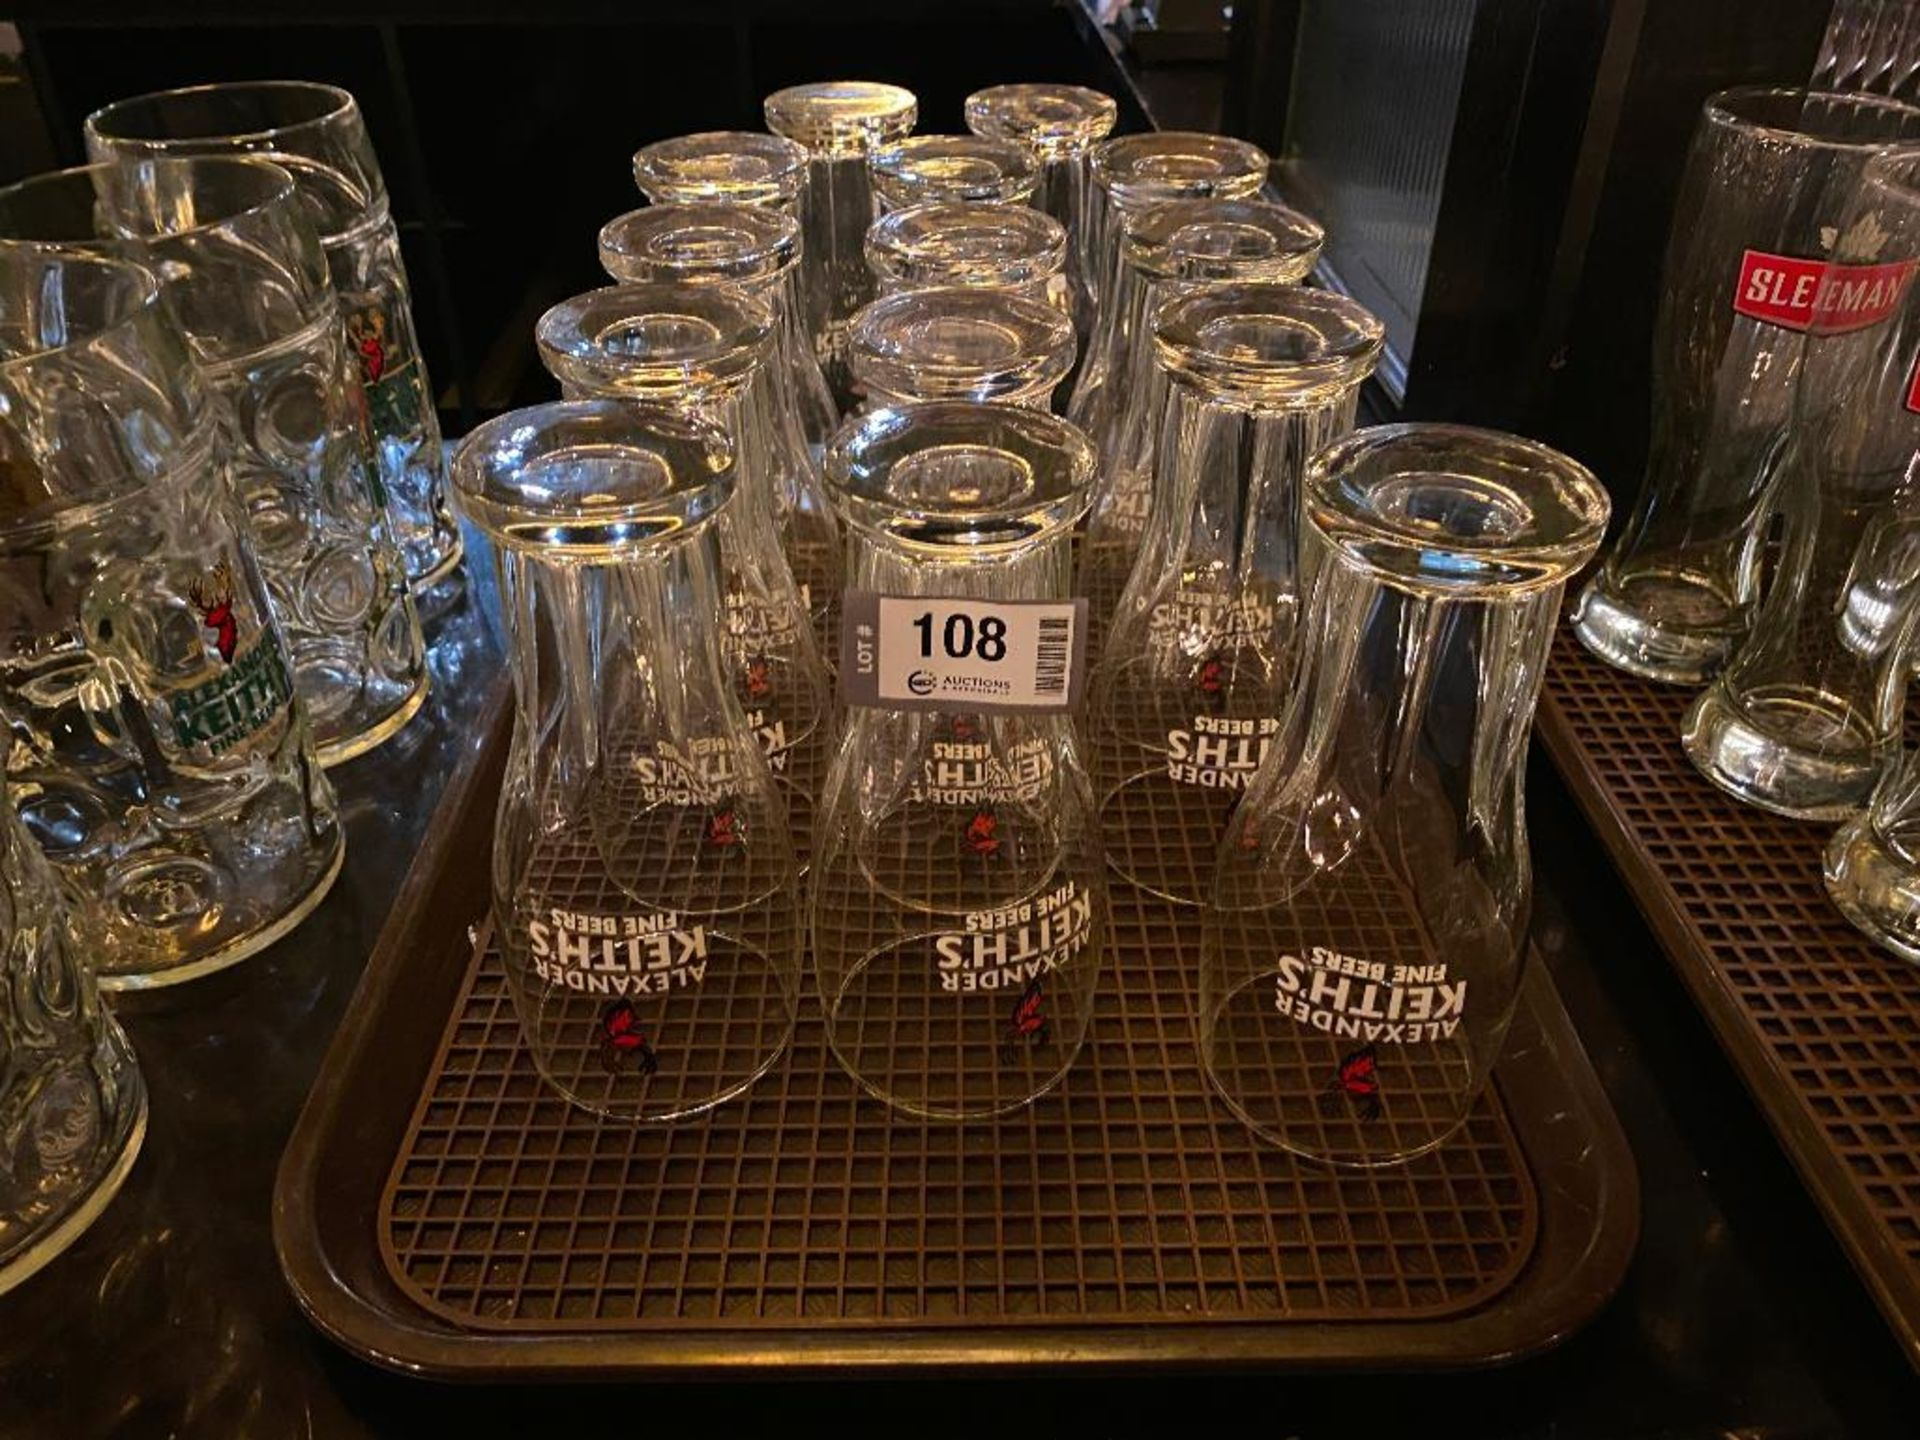 LOT OF (14) ALEXANDER KEITH'S PINT GLASSES